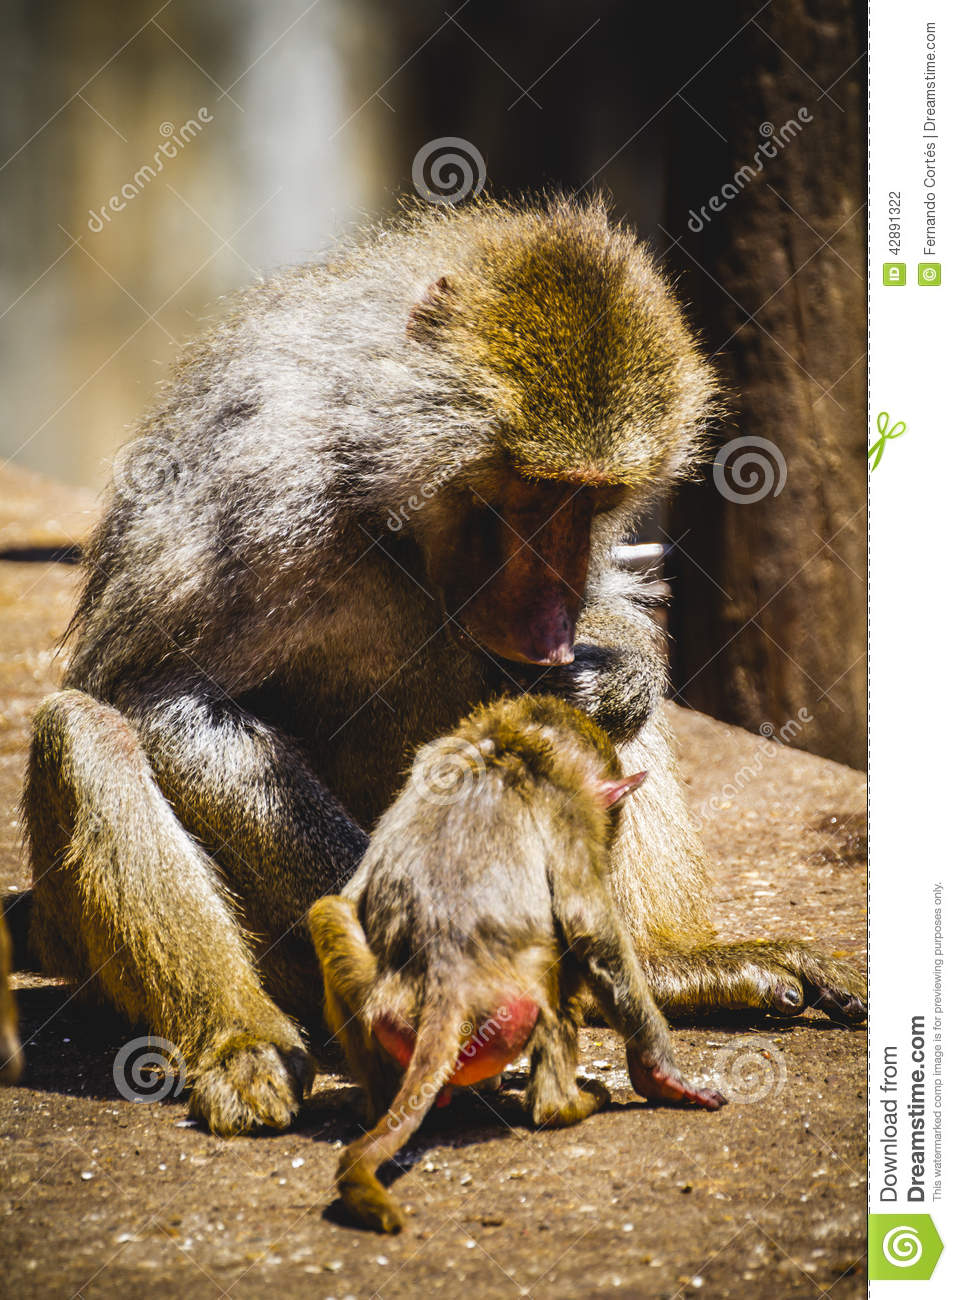 Baboon eating a family group and monkey